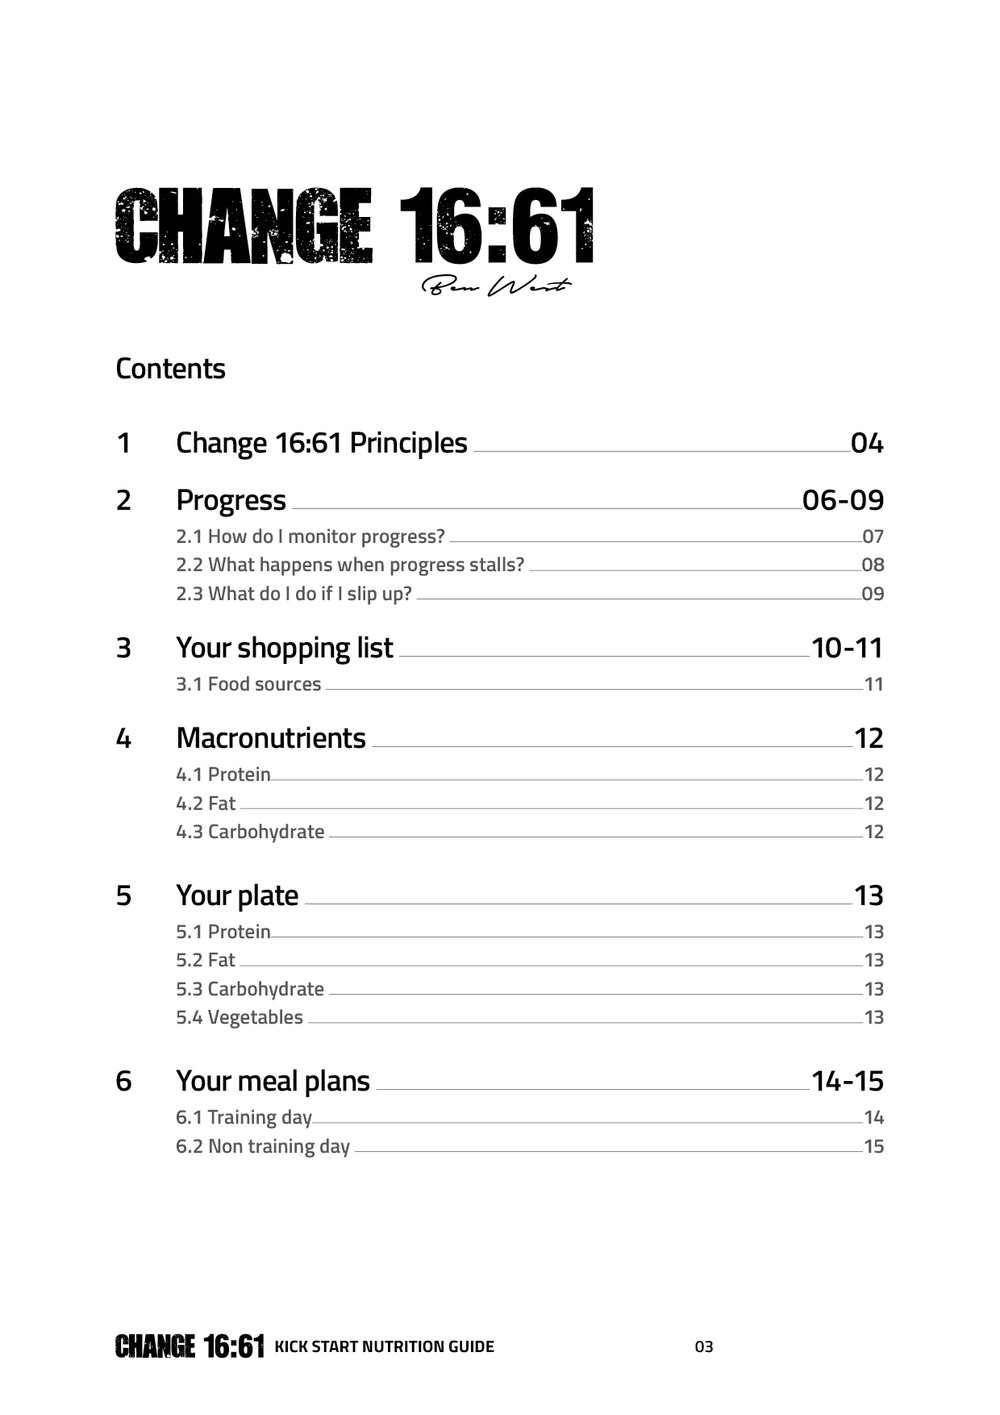 Change 16-61 Nutrition Kick Start2.jpg